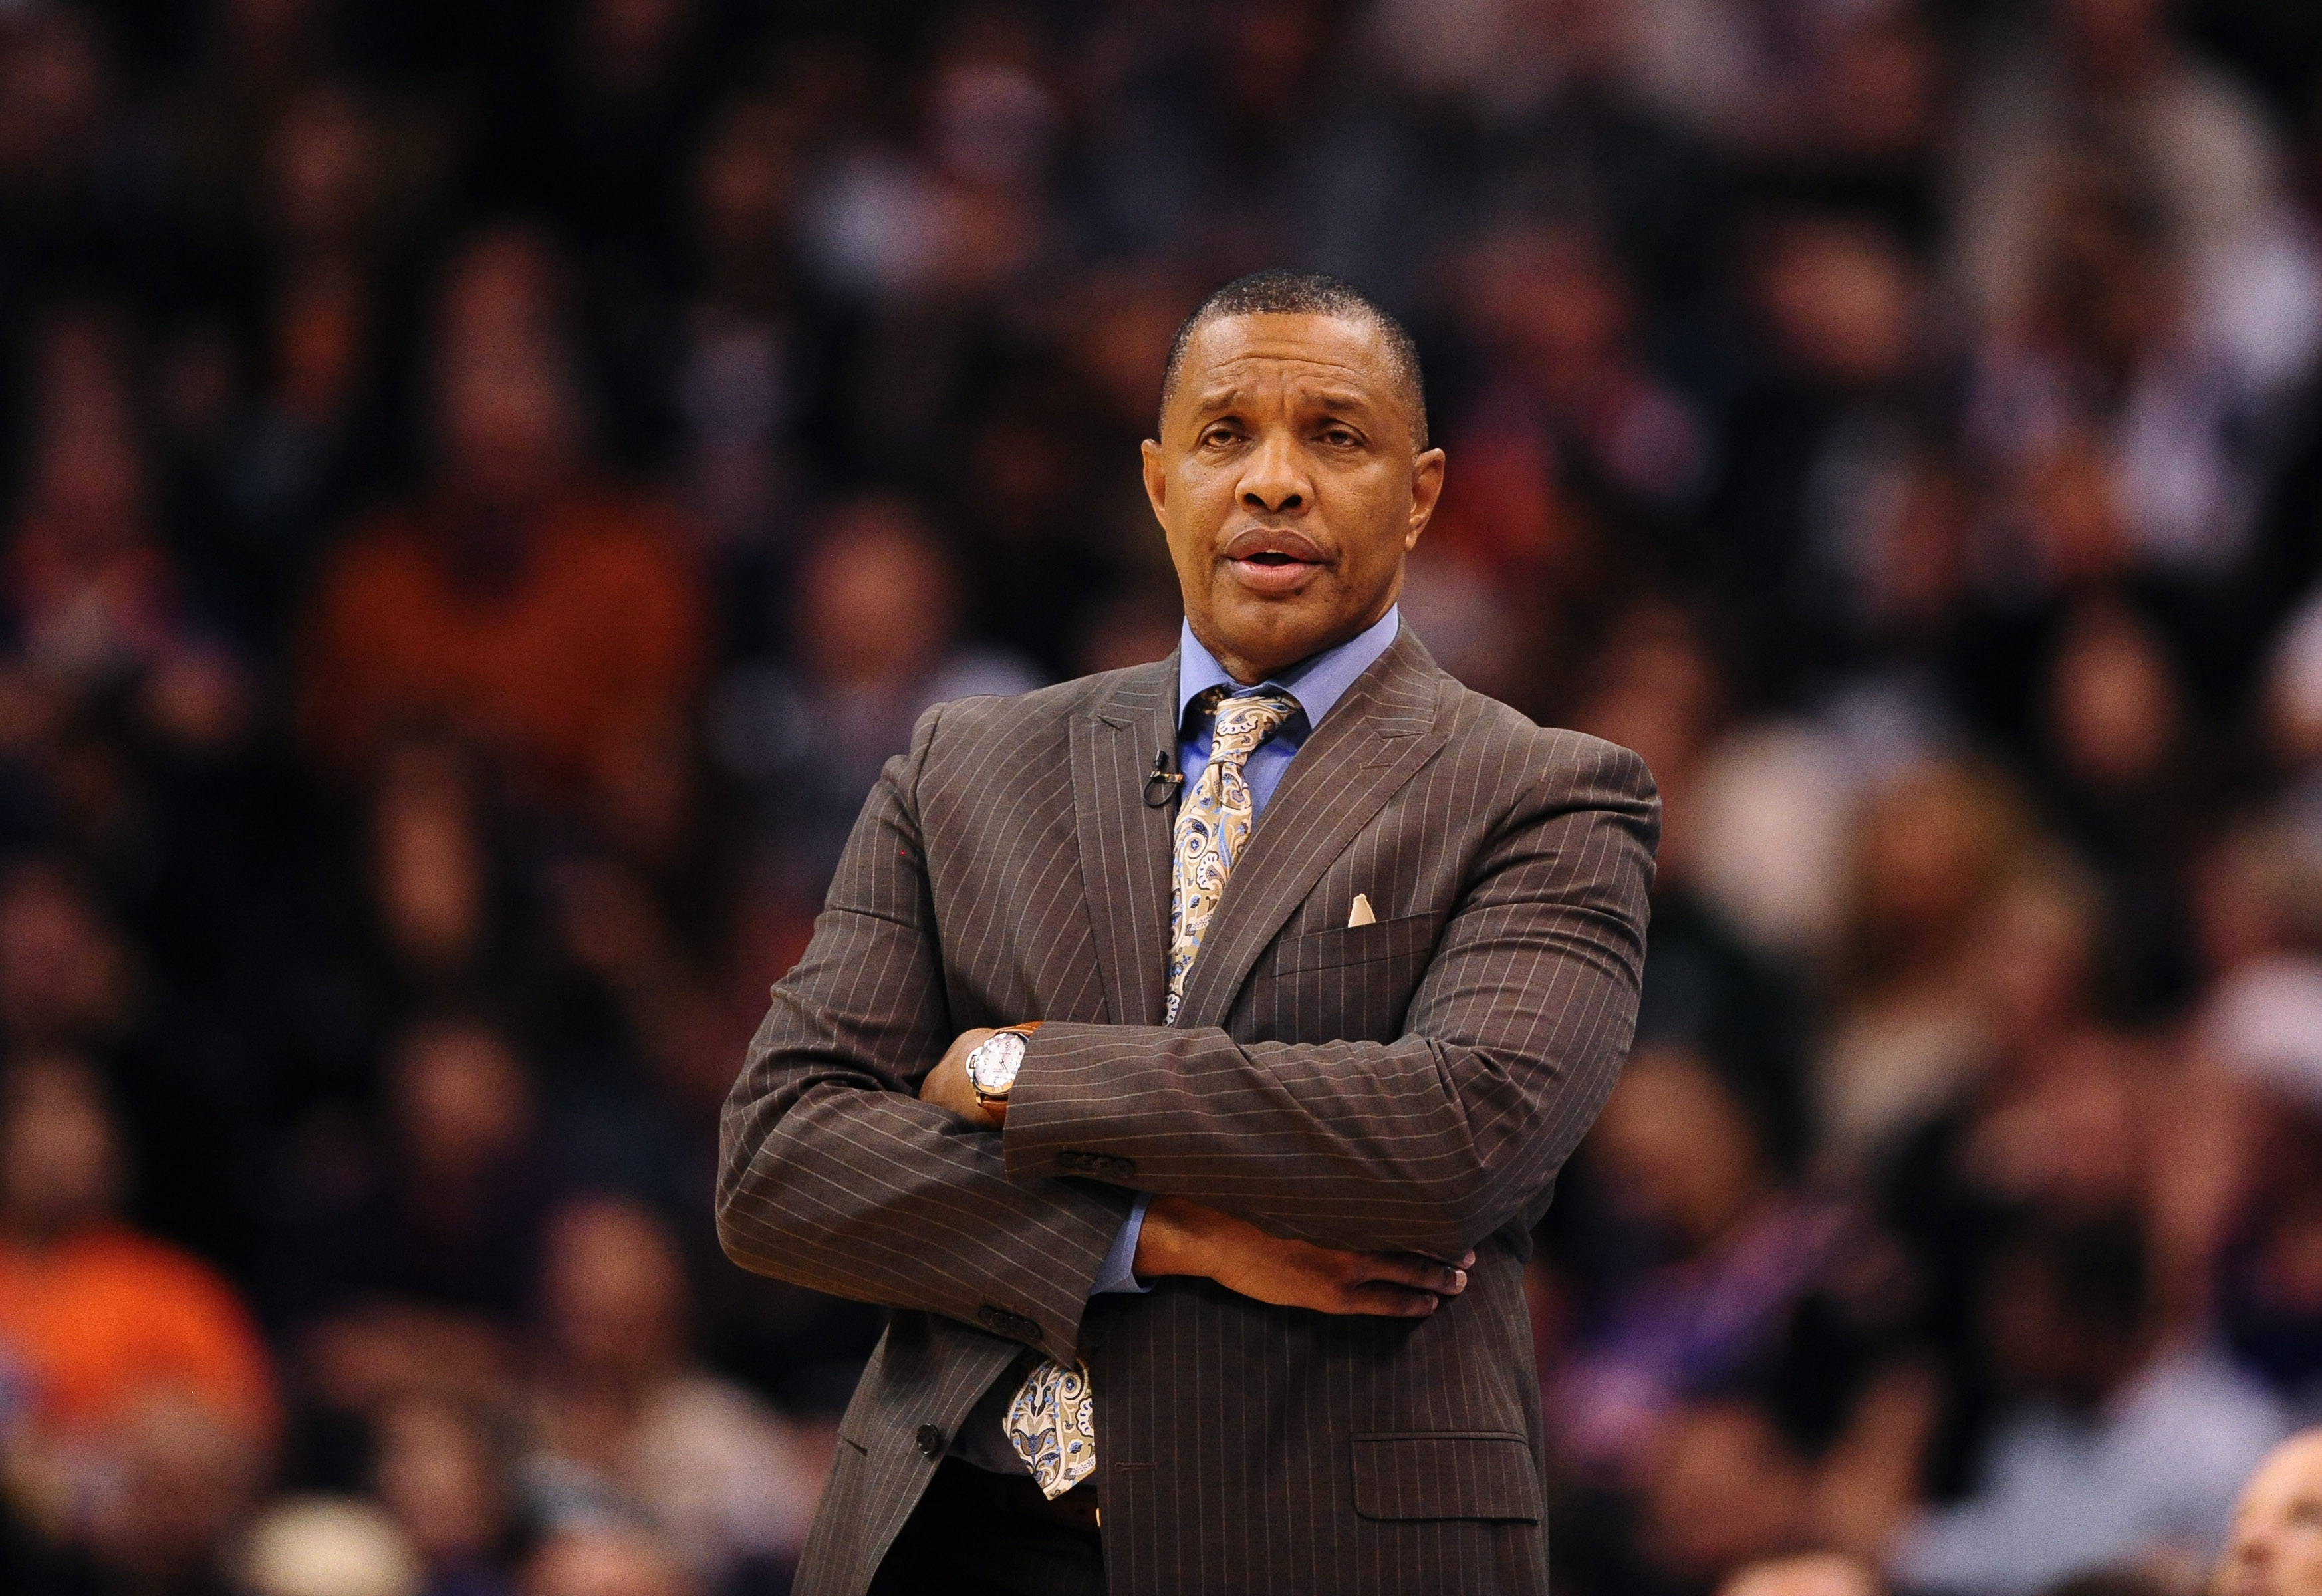 Alvin Gentry went 158-144 for parts of five seasons as Suns coach. (USA Today Sports)